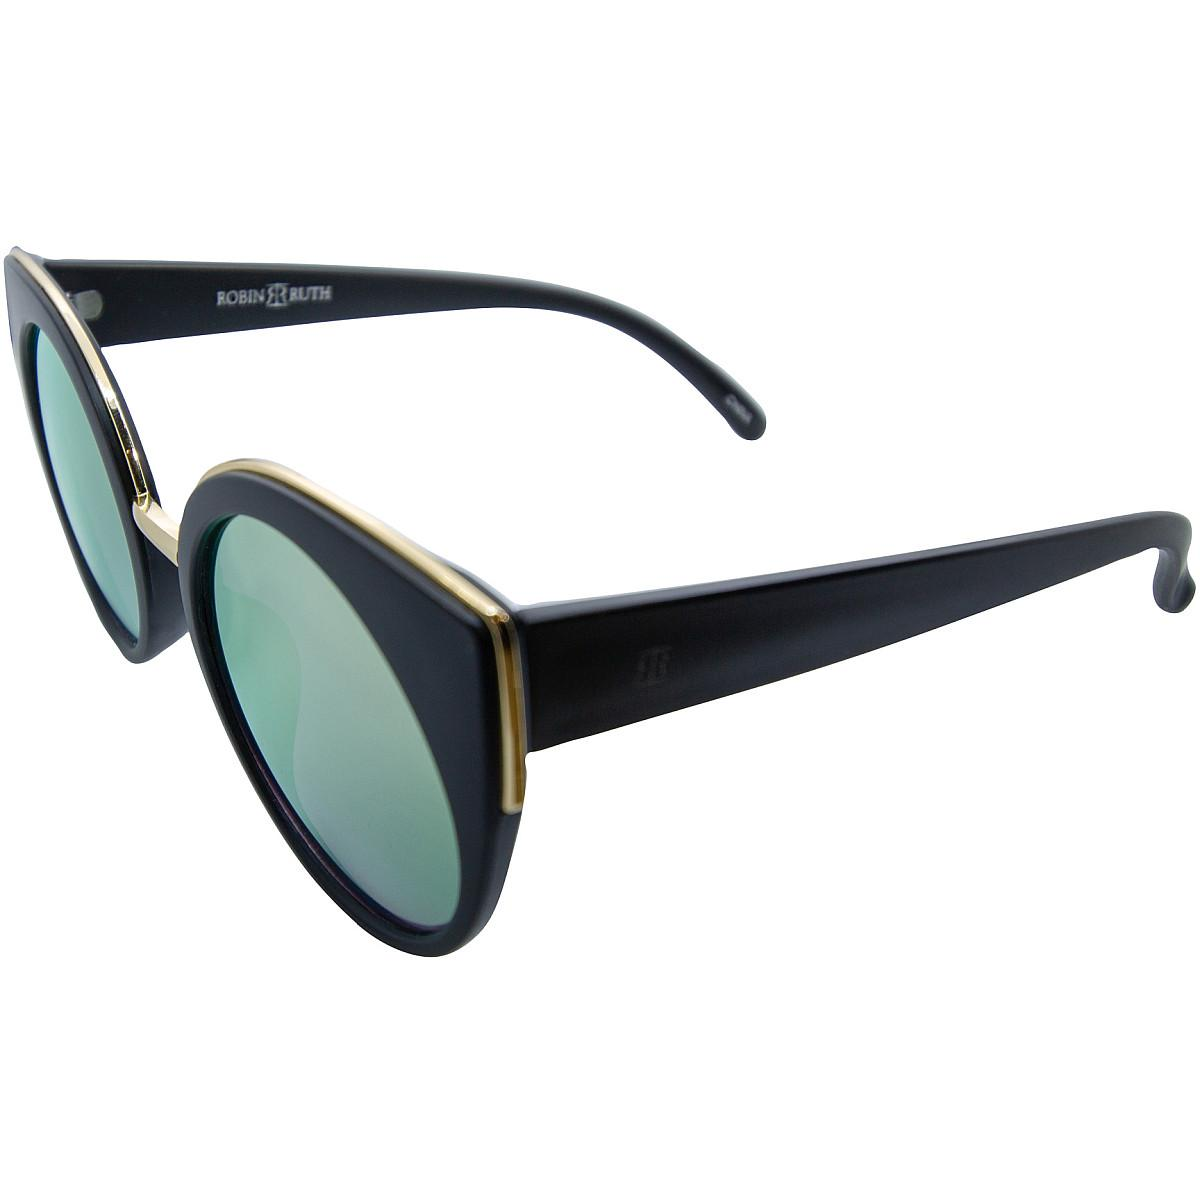 9bec59f06d4 Details about ROBIN RUTH CATTY LIMITED COLLECTION DESIGNER SUNGLASSES-GREEN